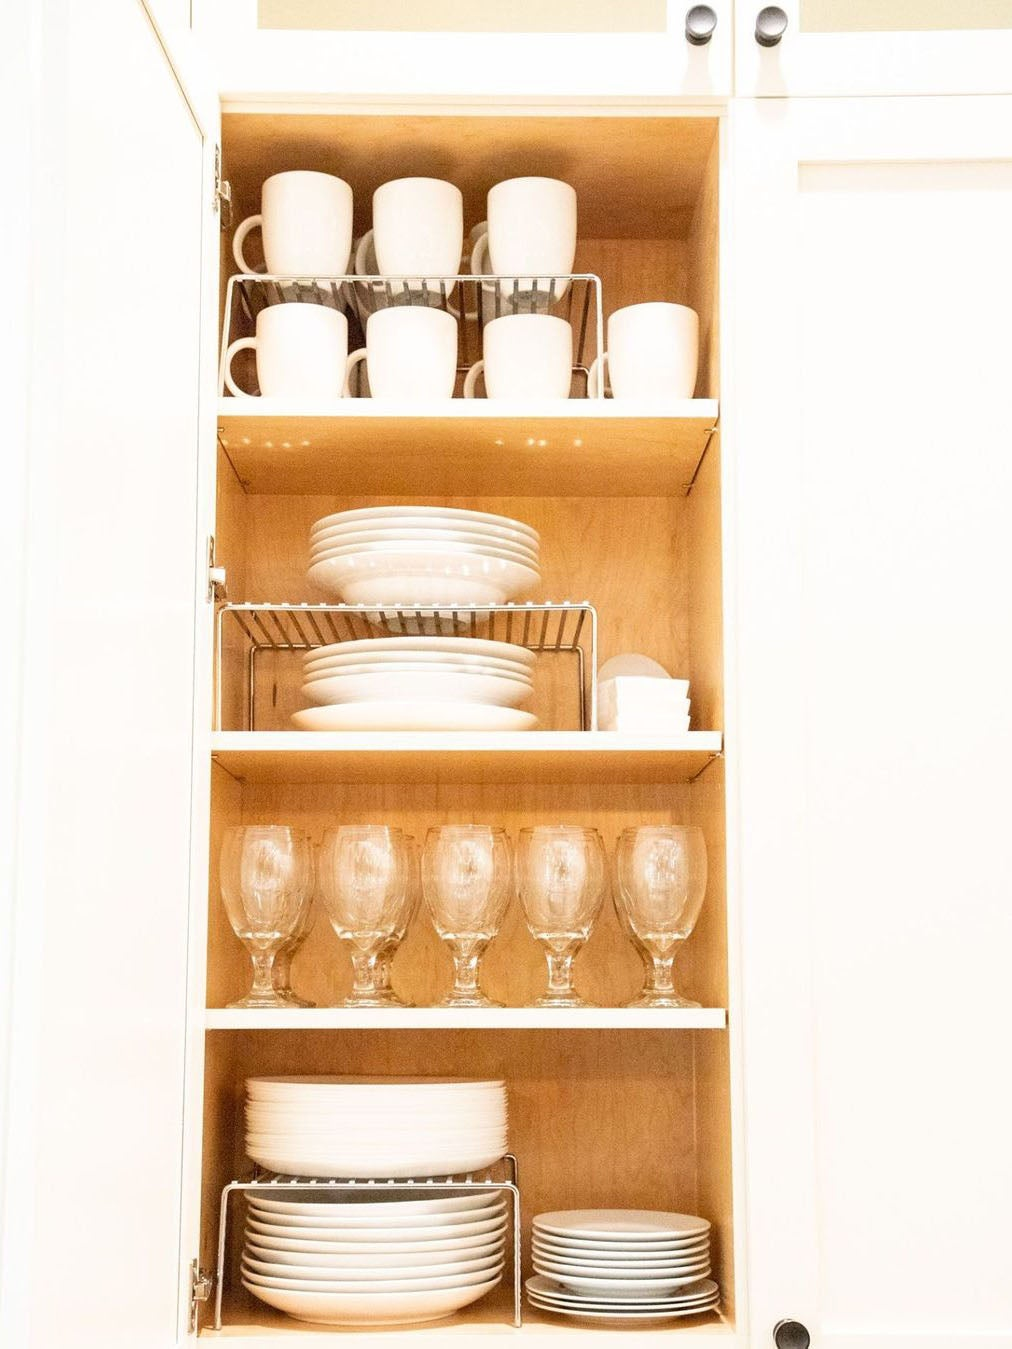 white plates stacked in cabinet